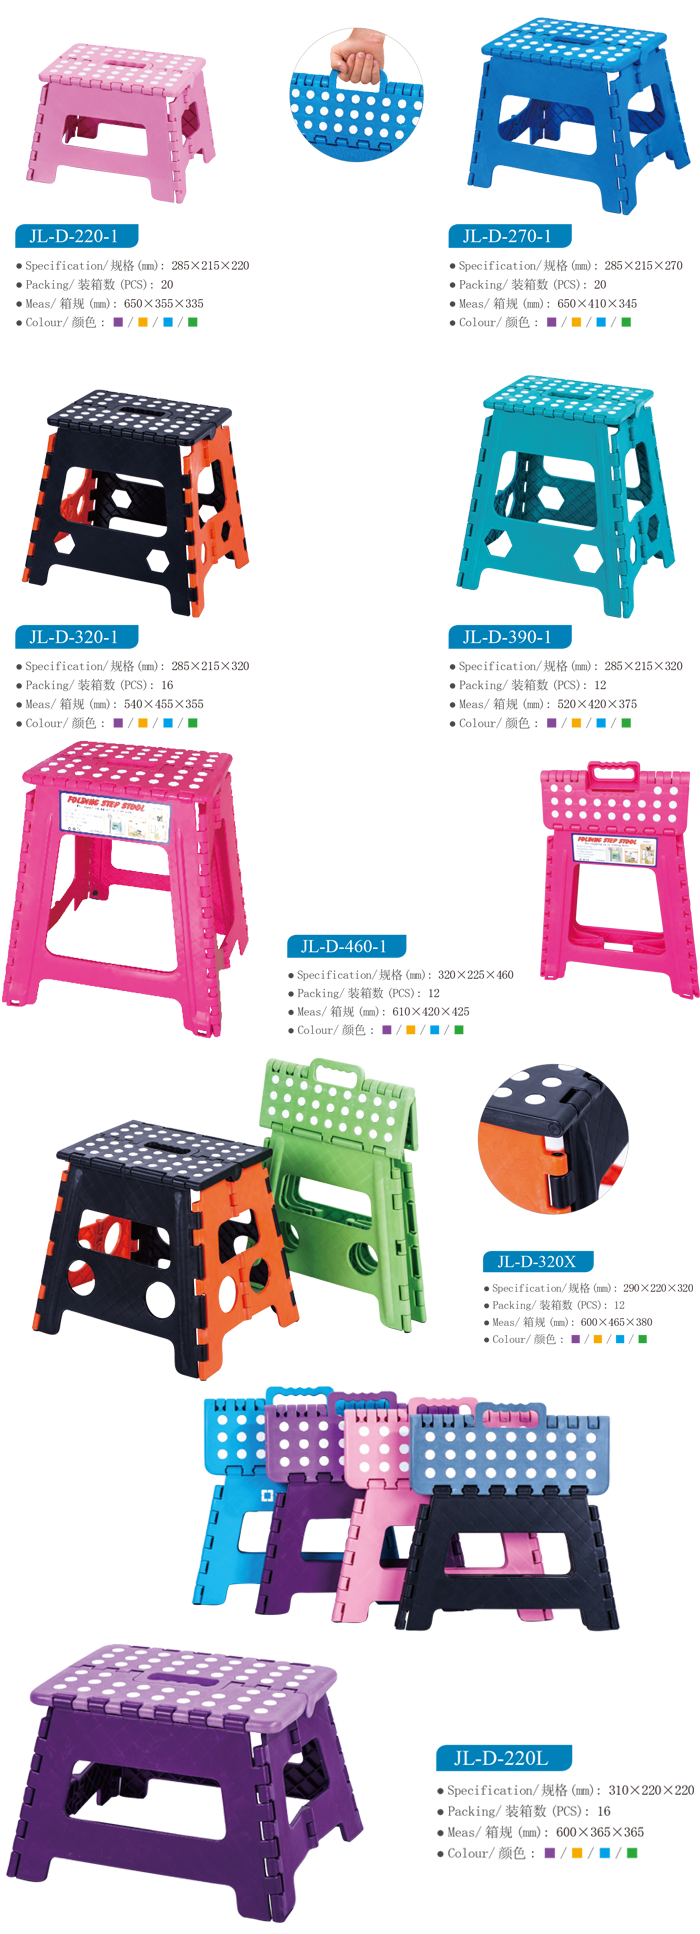 Small Collapsible Step Stool 9 inch Kids Plastic Stool Chair Price  Portable Folding Stool  sc 1 st  Alibaba & Small Collapsible Step Stool9 Inch Kids Plastic Stool Chair Price ... islam-shia.org